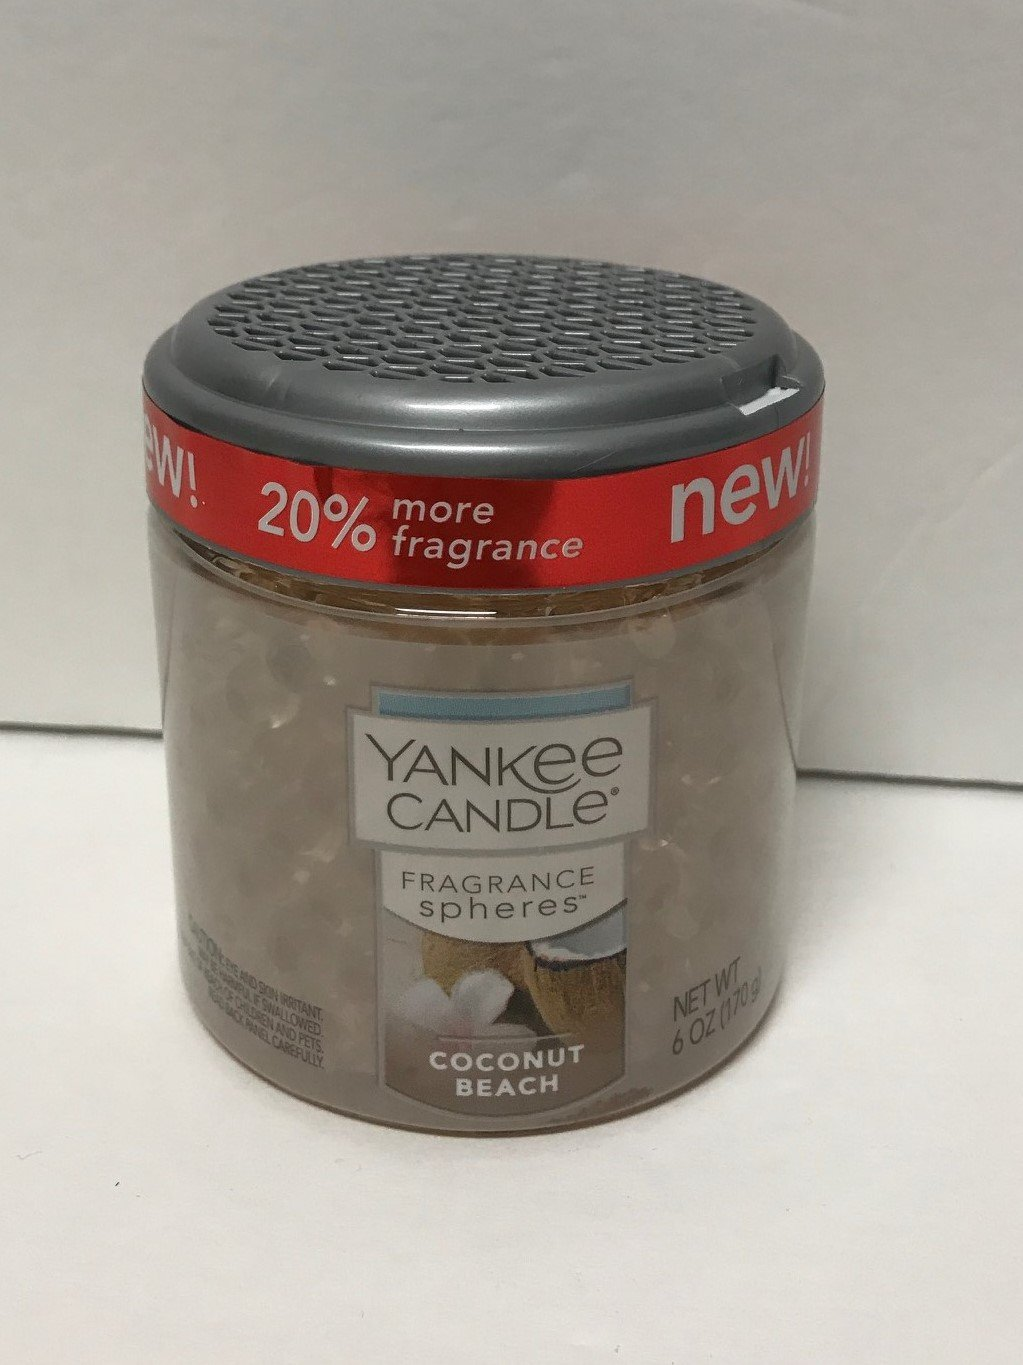 Yankee Candle Coconut Beach Fragrance Spheres, Fresh Scent